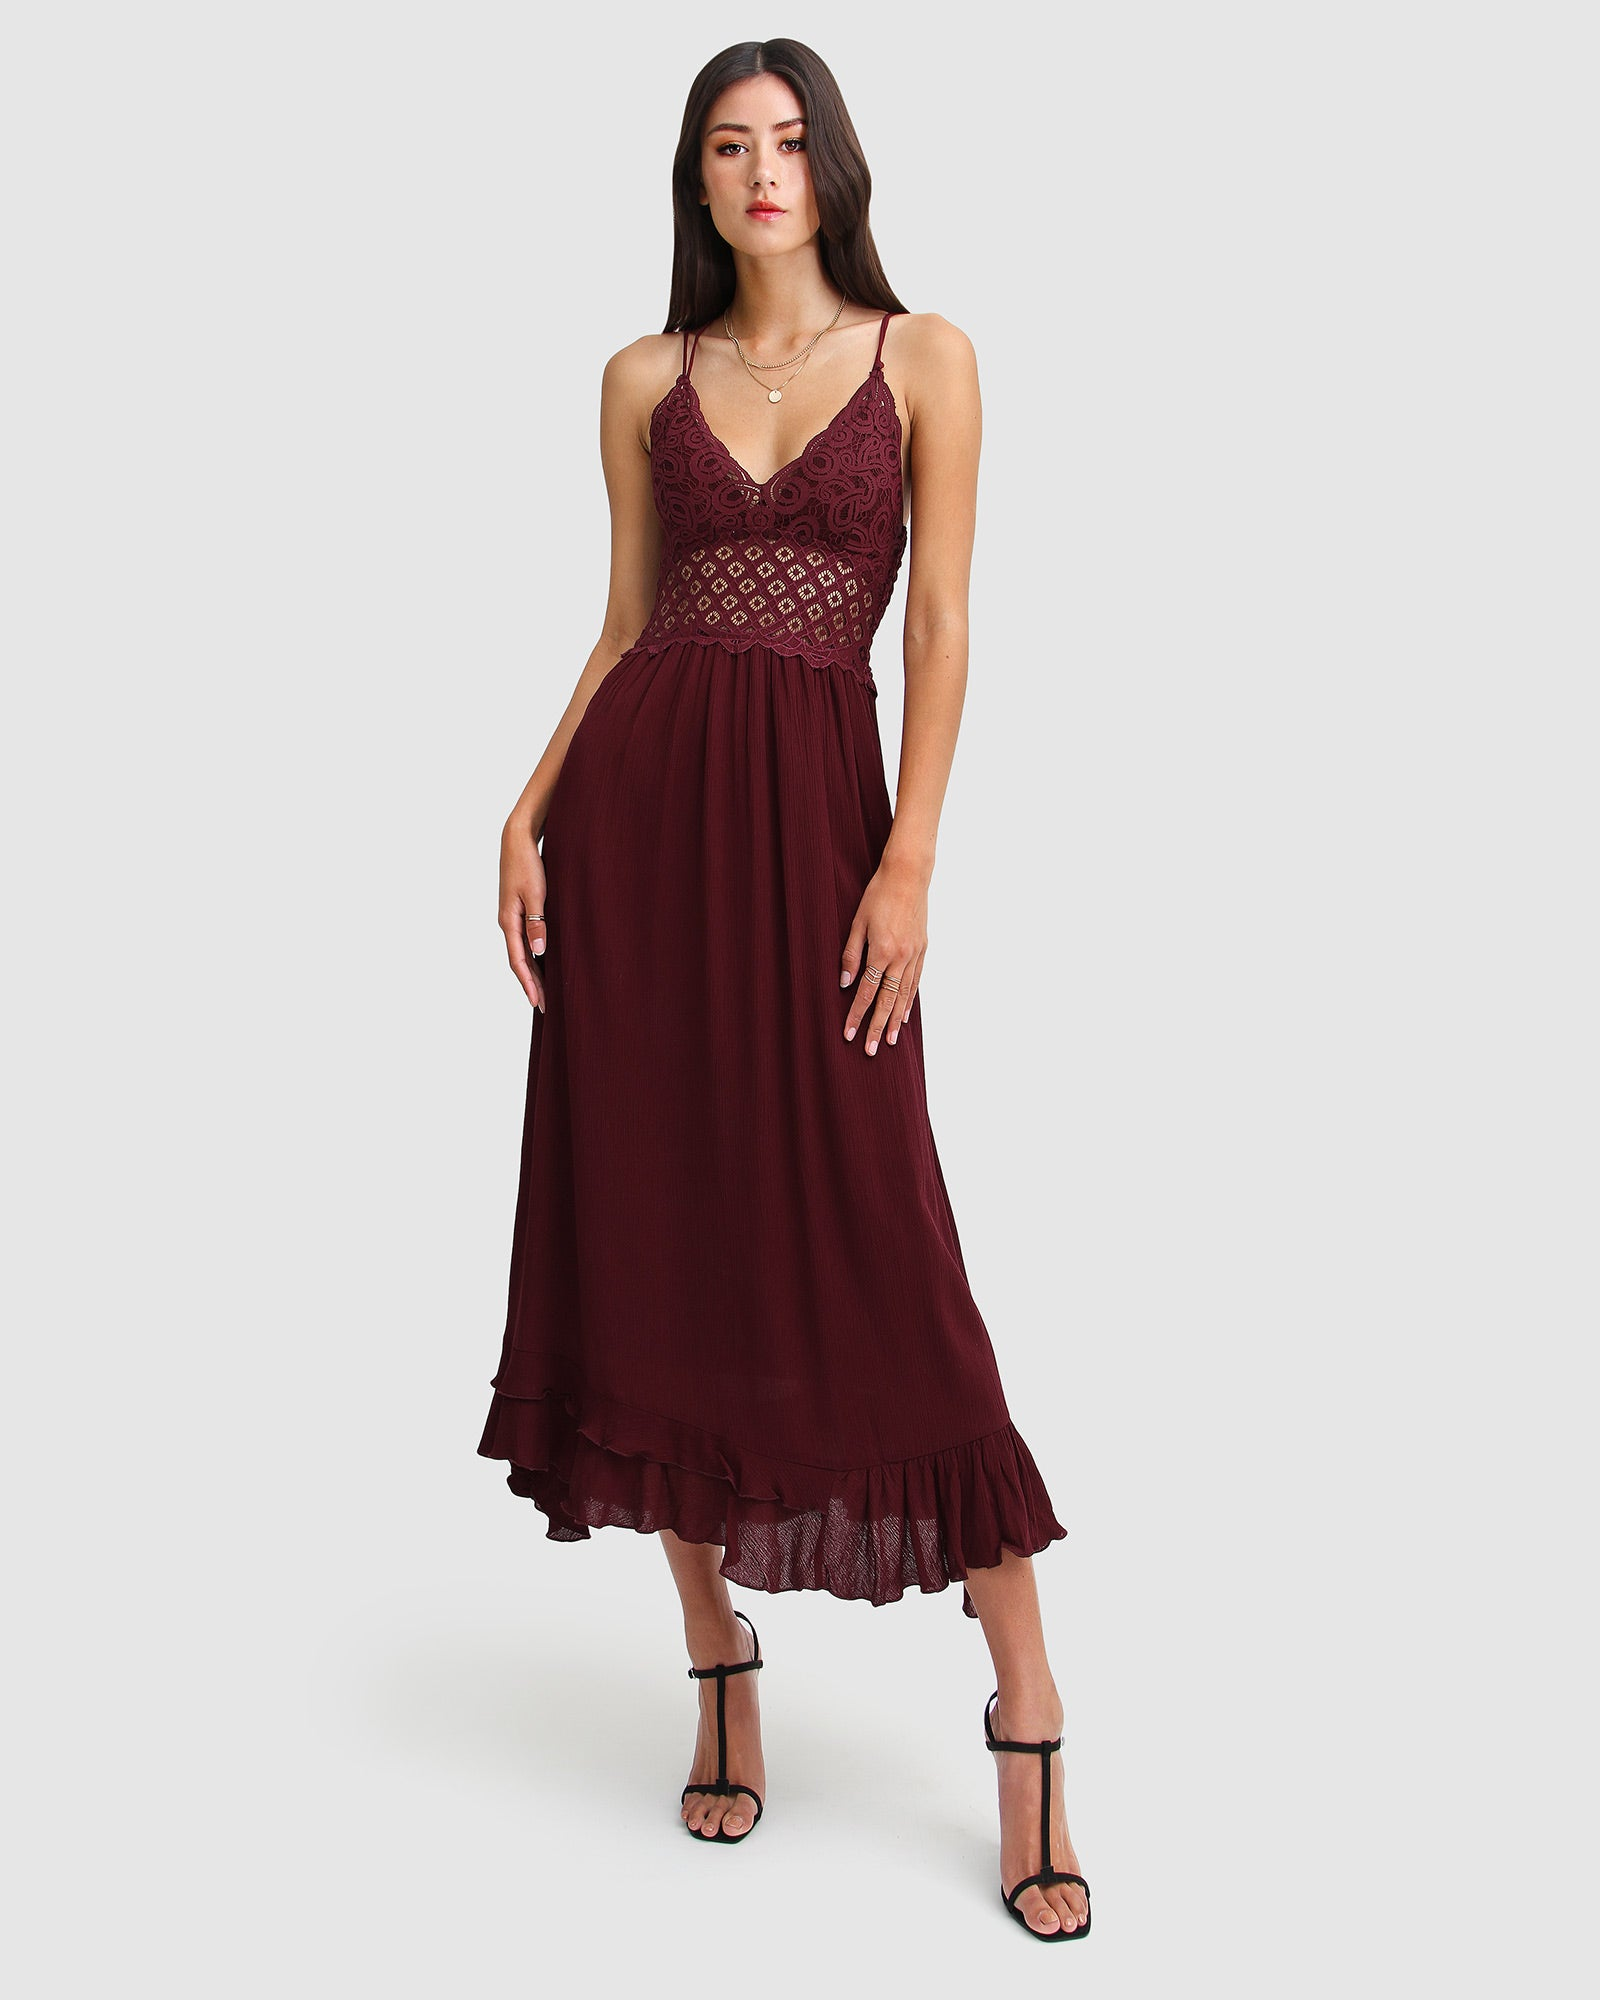 Lost In You Maxi Slip Dress - Burgundy